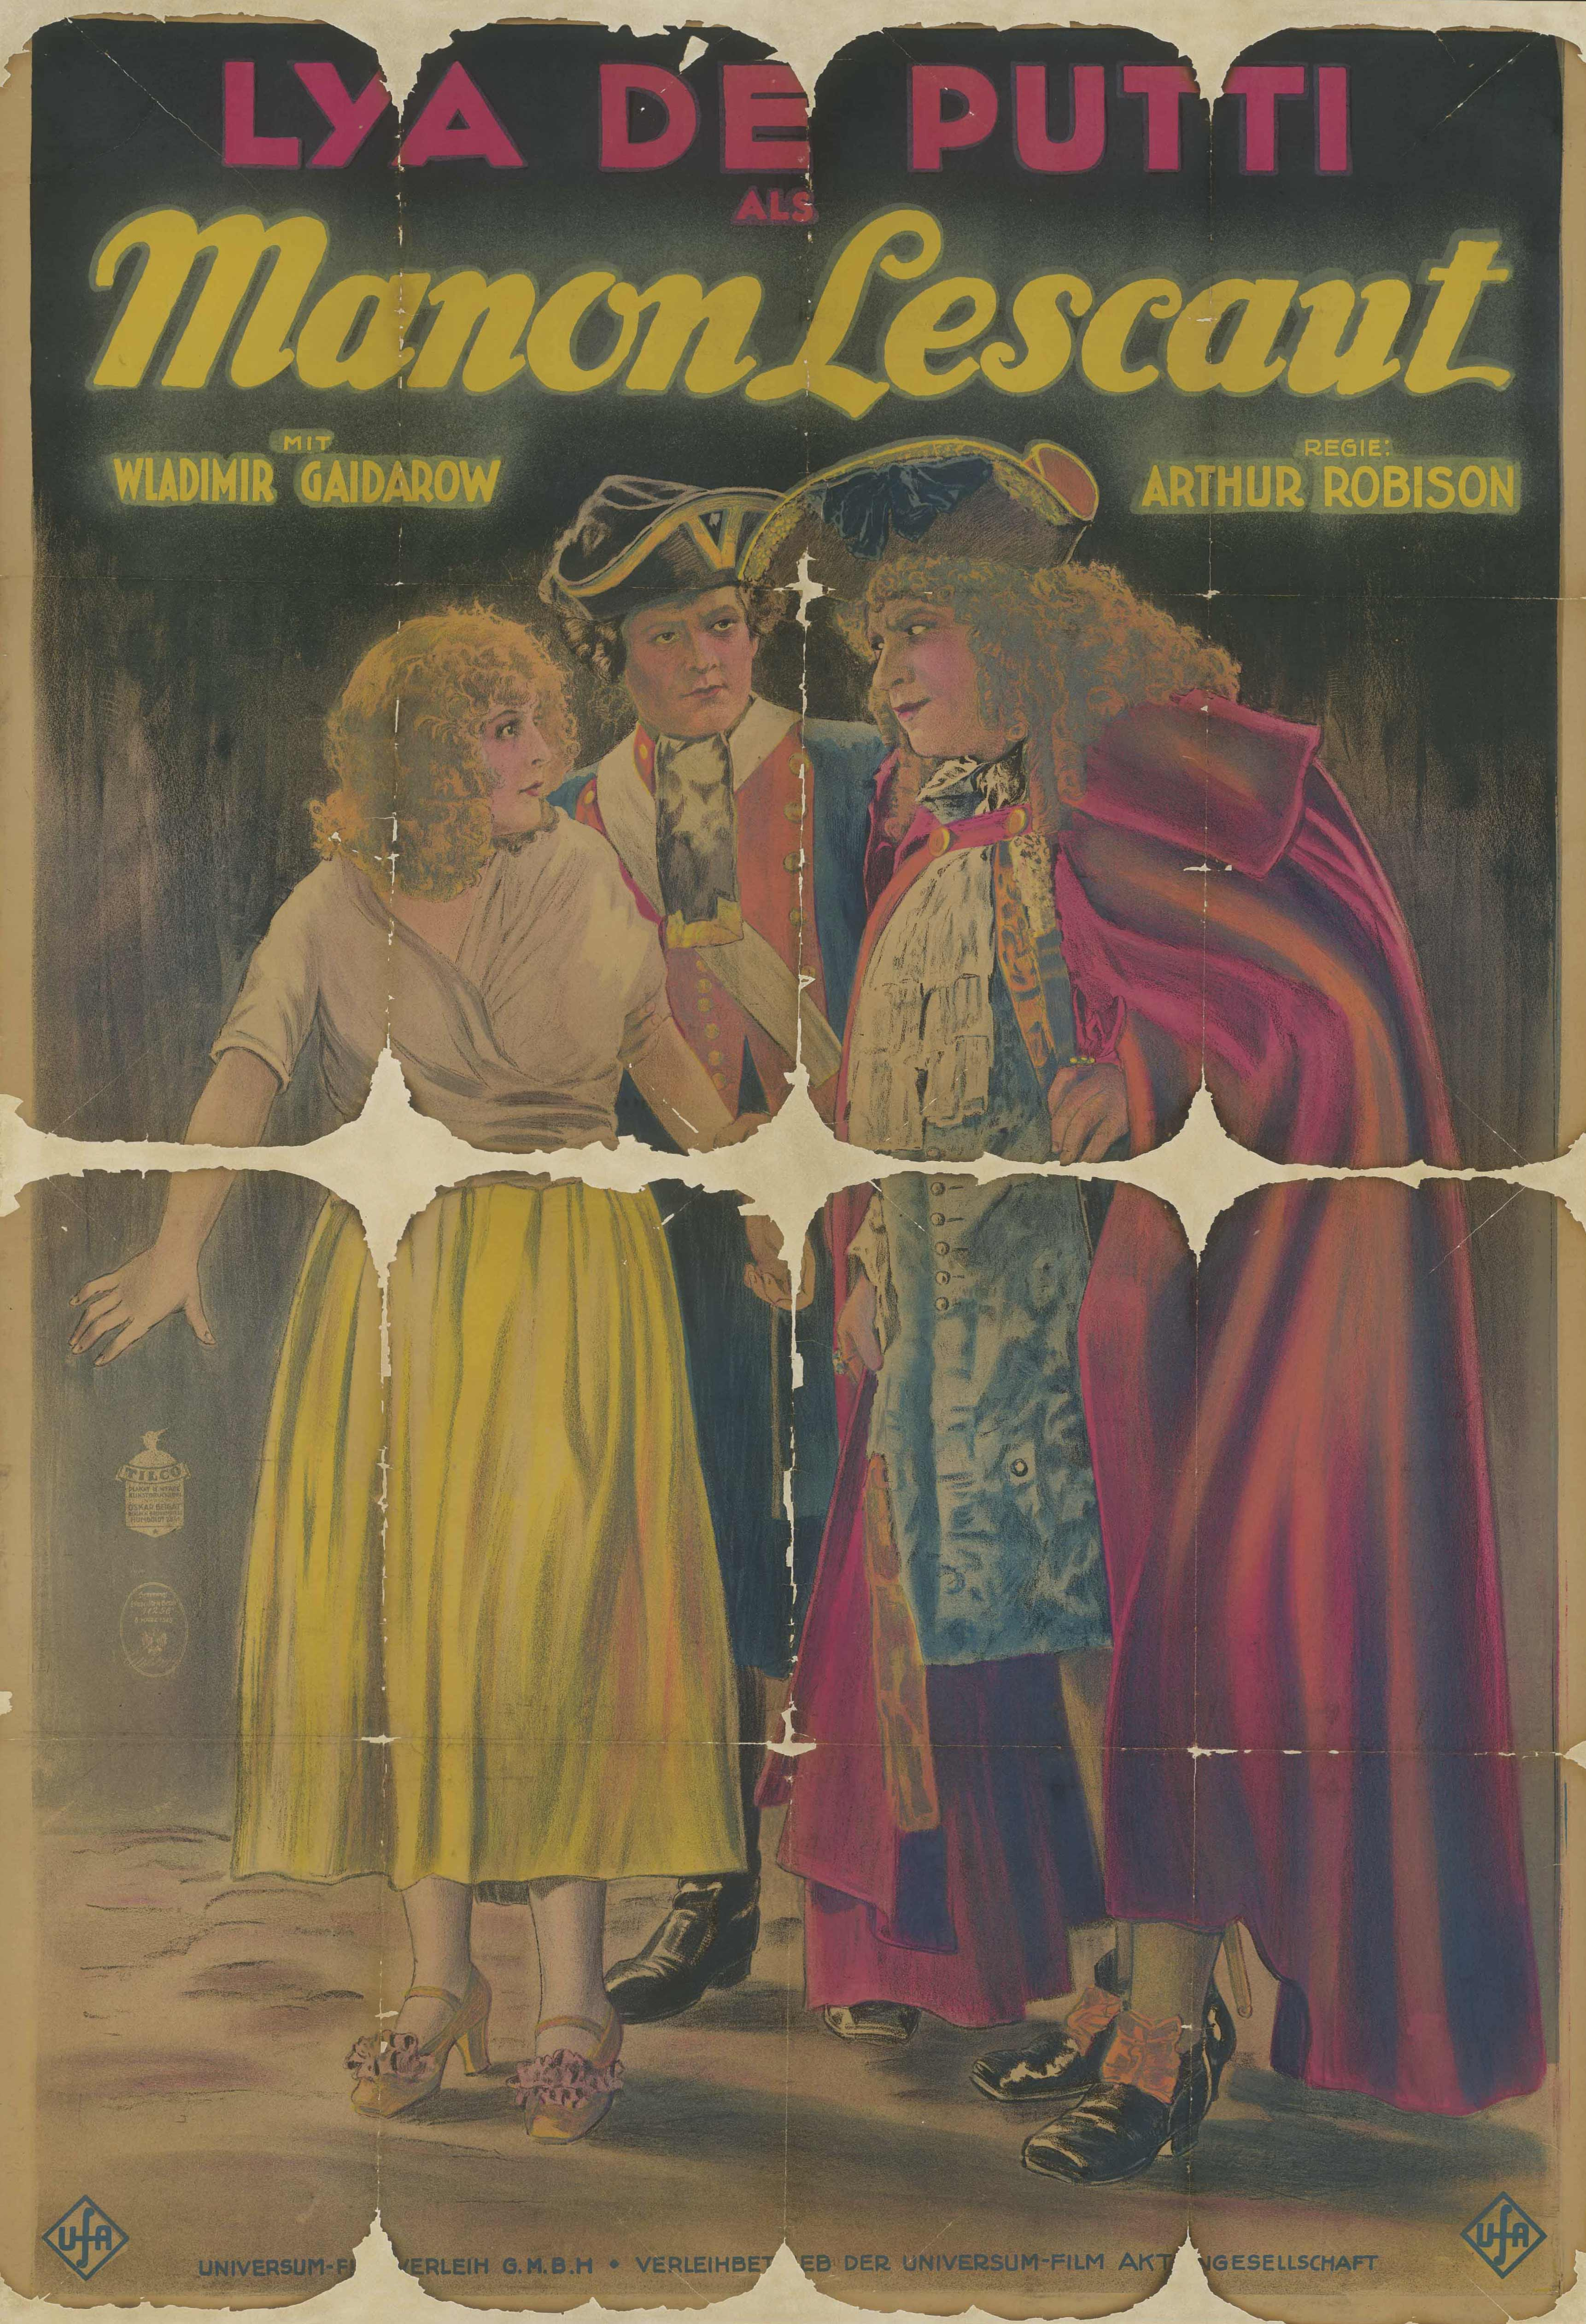 Film poster for Manon Lescaut, Germany 1925/1926